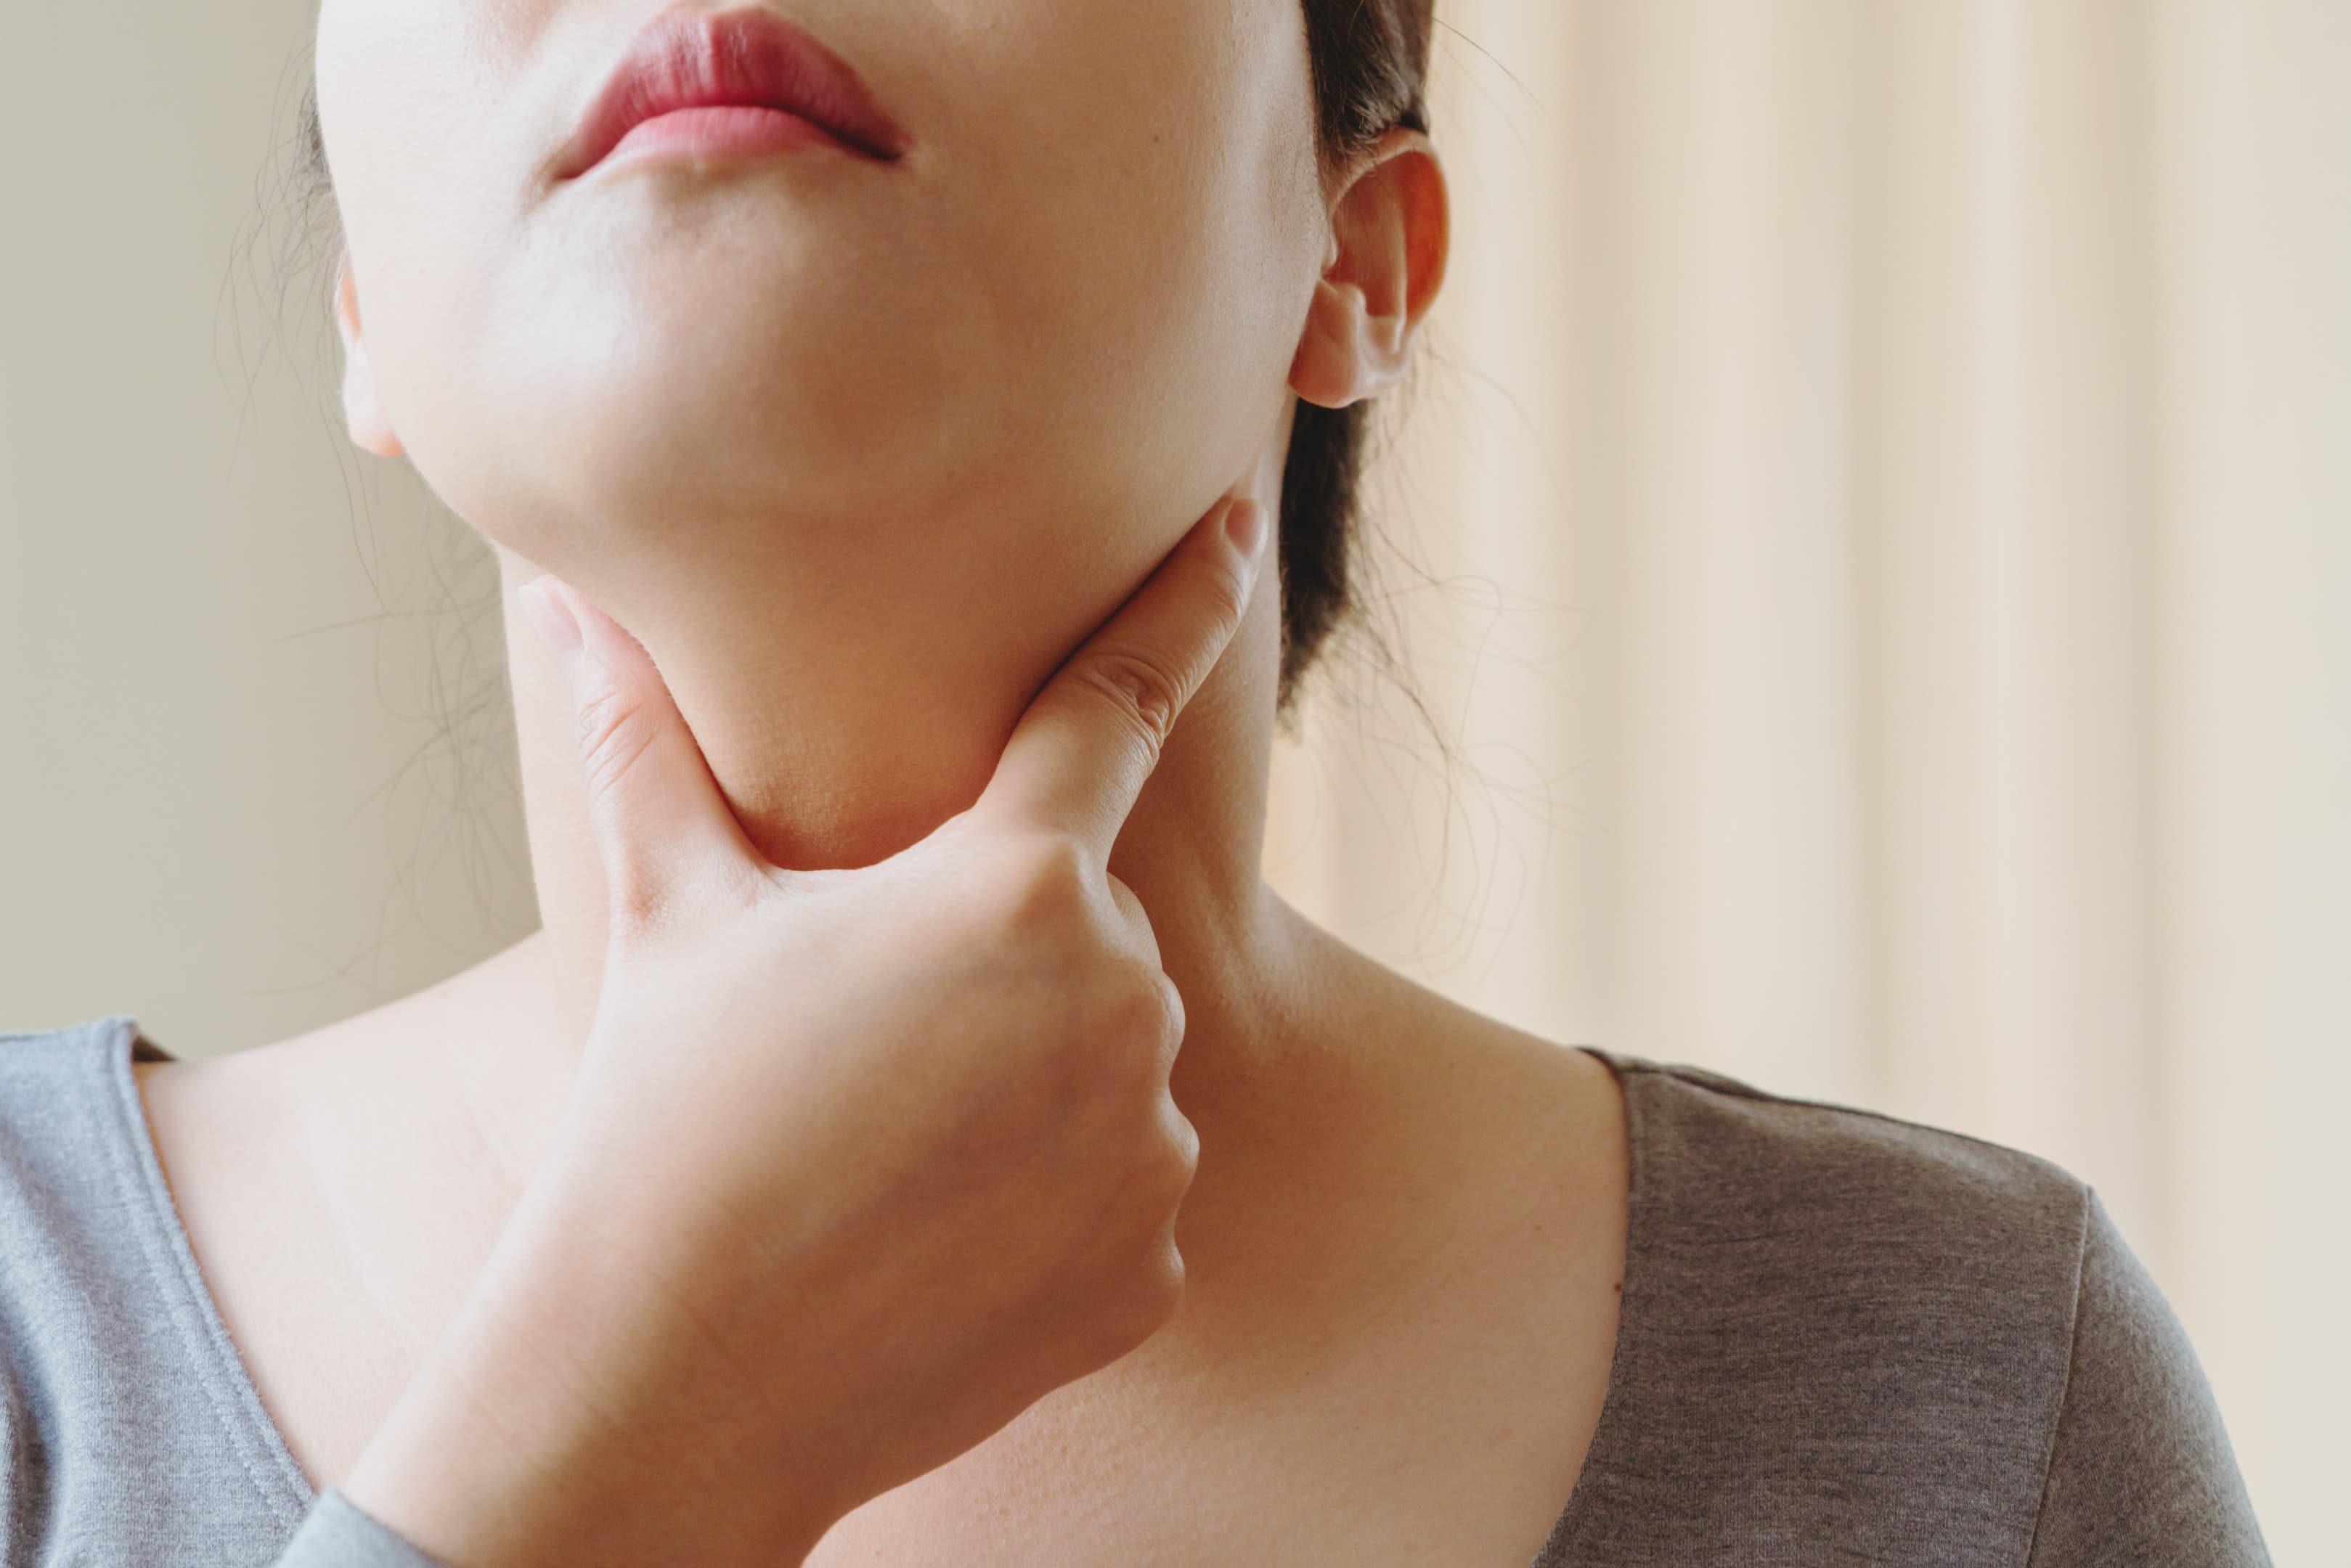 Women with thyroid gland test . Endocrinology, hormones and treatment. Inflammation of the sore throat